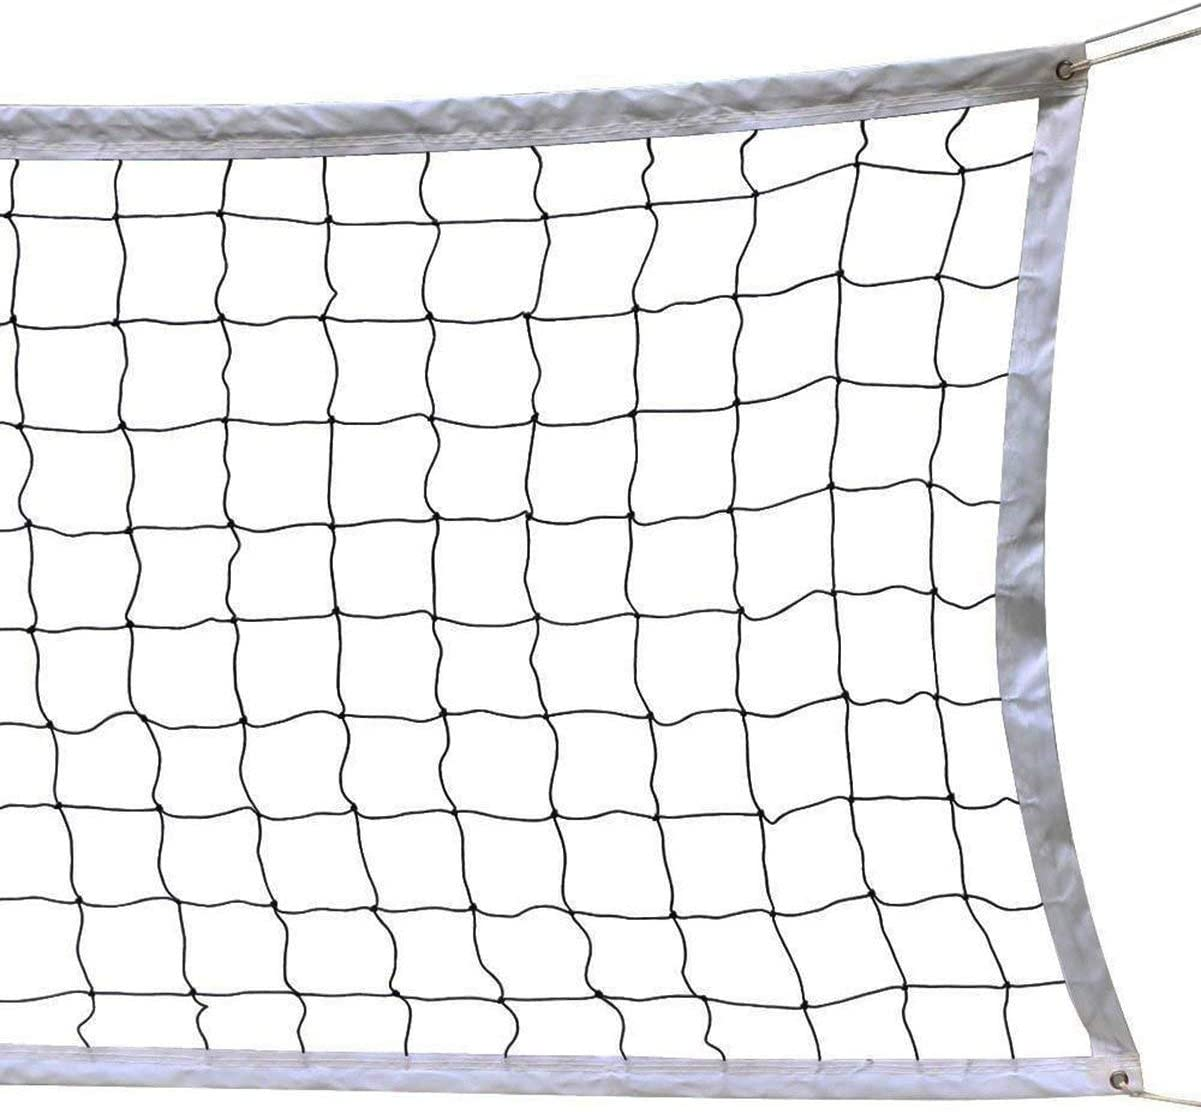 Amazon Com Holiberty Portable Volleyball Net 9 5m X 1m Pool Beach Volleyball Net Official Standard Size Indoor Outdoor Sports Backyard Schoolyard Training Equipment Net With Steel Cable Rope Without Frame Sports